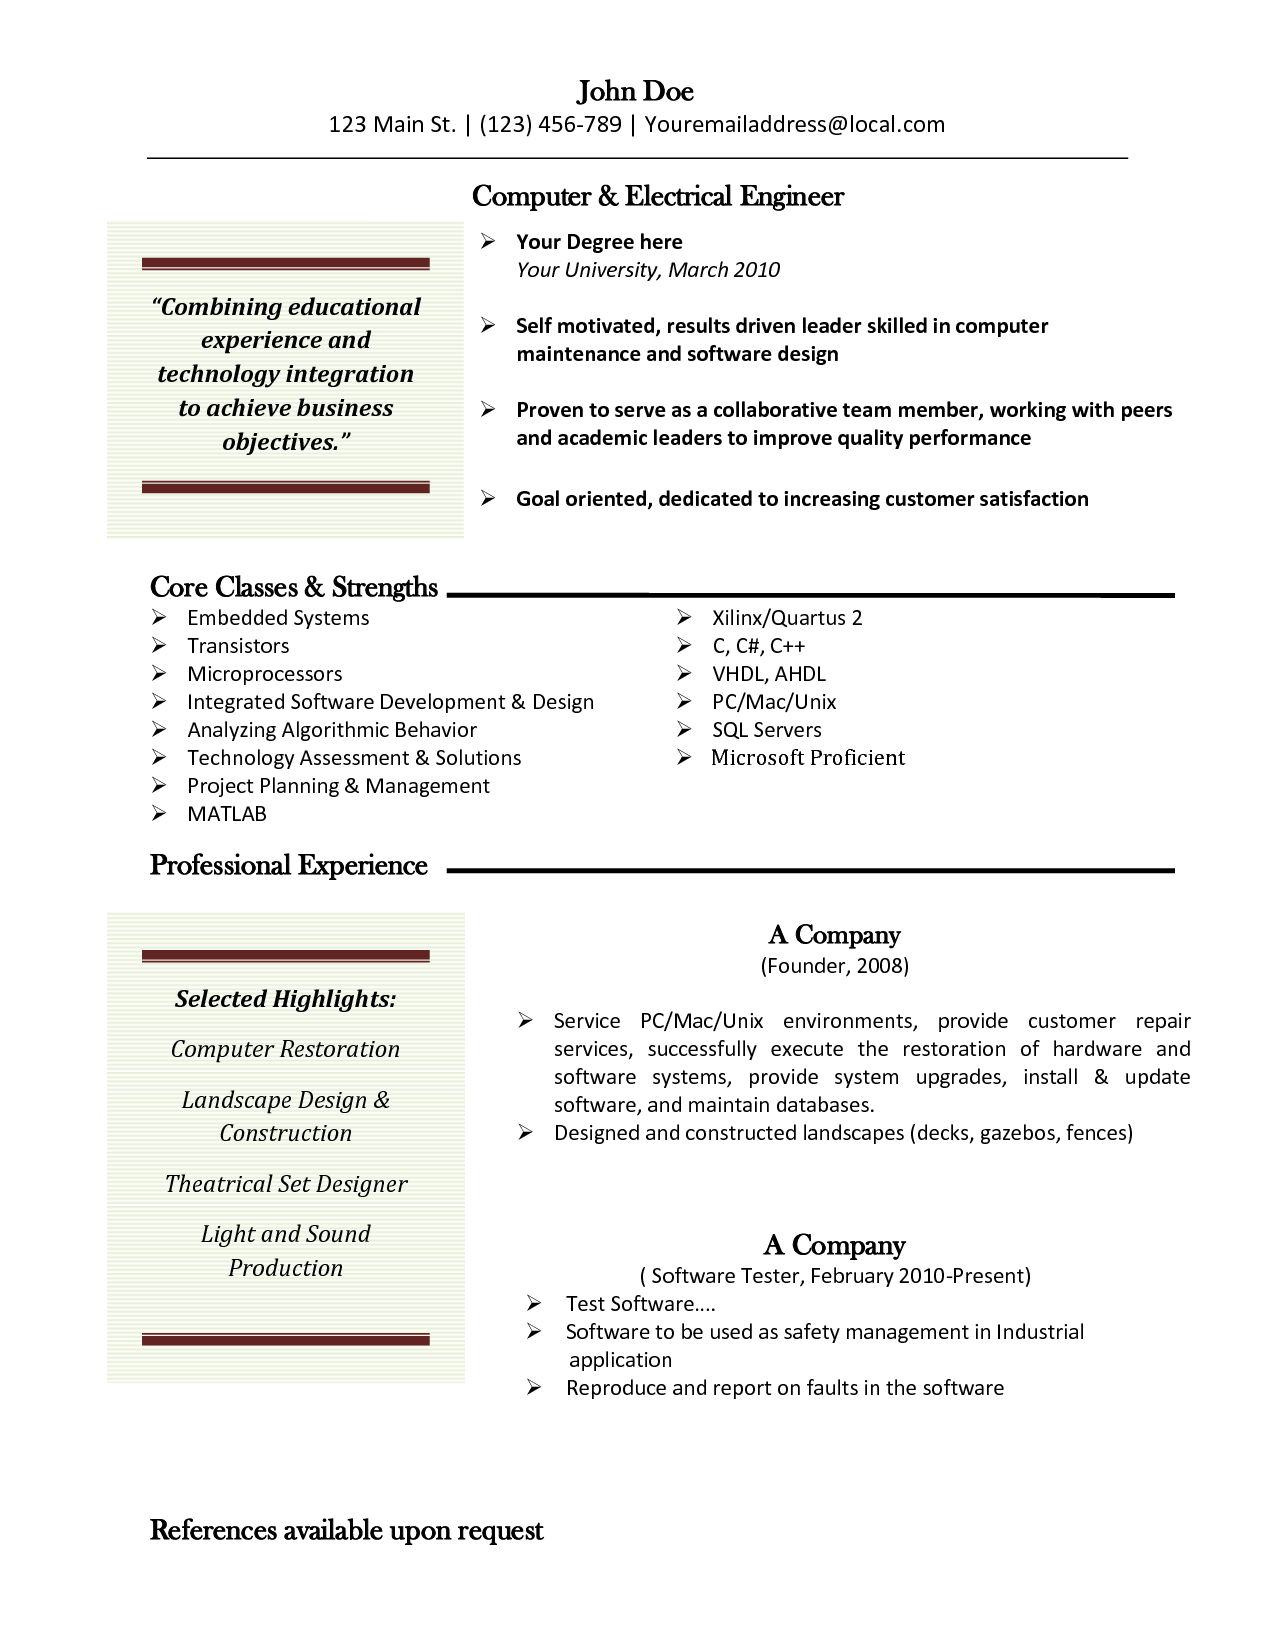 Free Resumes Templates To Download Unique Freeresumetemplatesformaccqjykibi 1275×1650  Cv